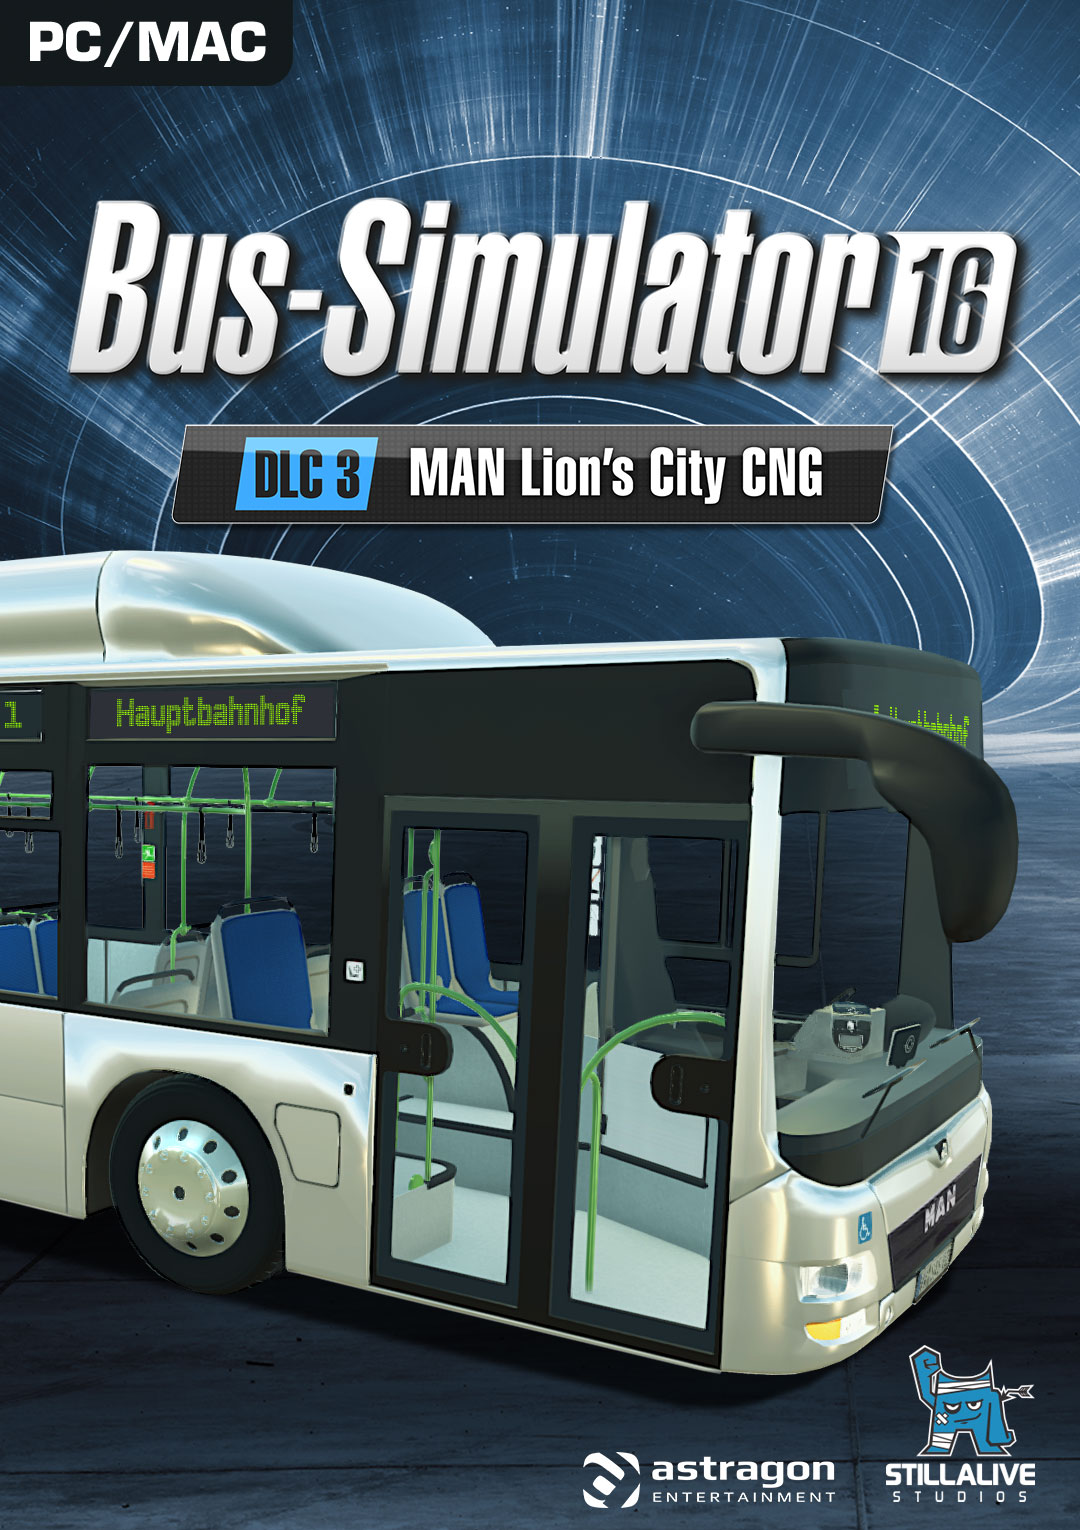 bus-simulator-16-man-lions-city-cng-pack-pc-mac-code-steam